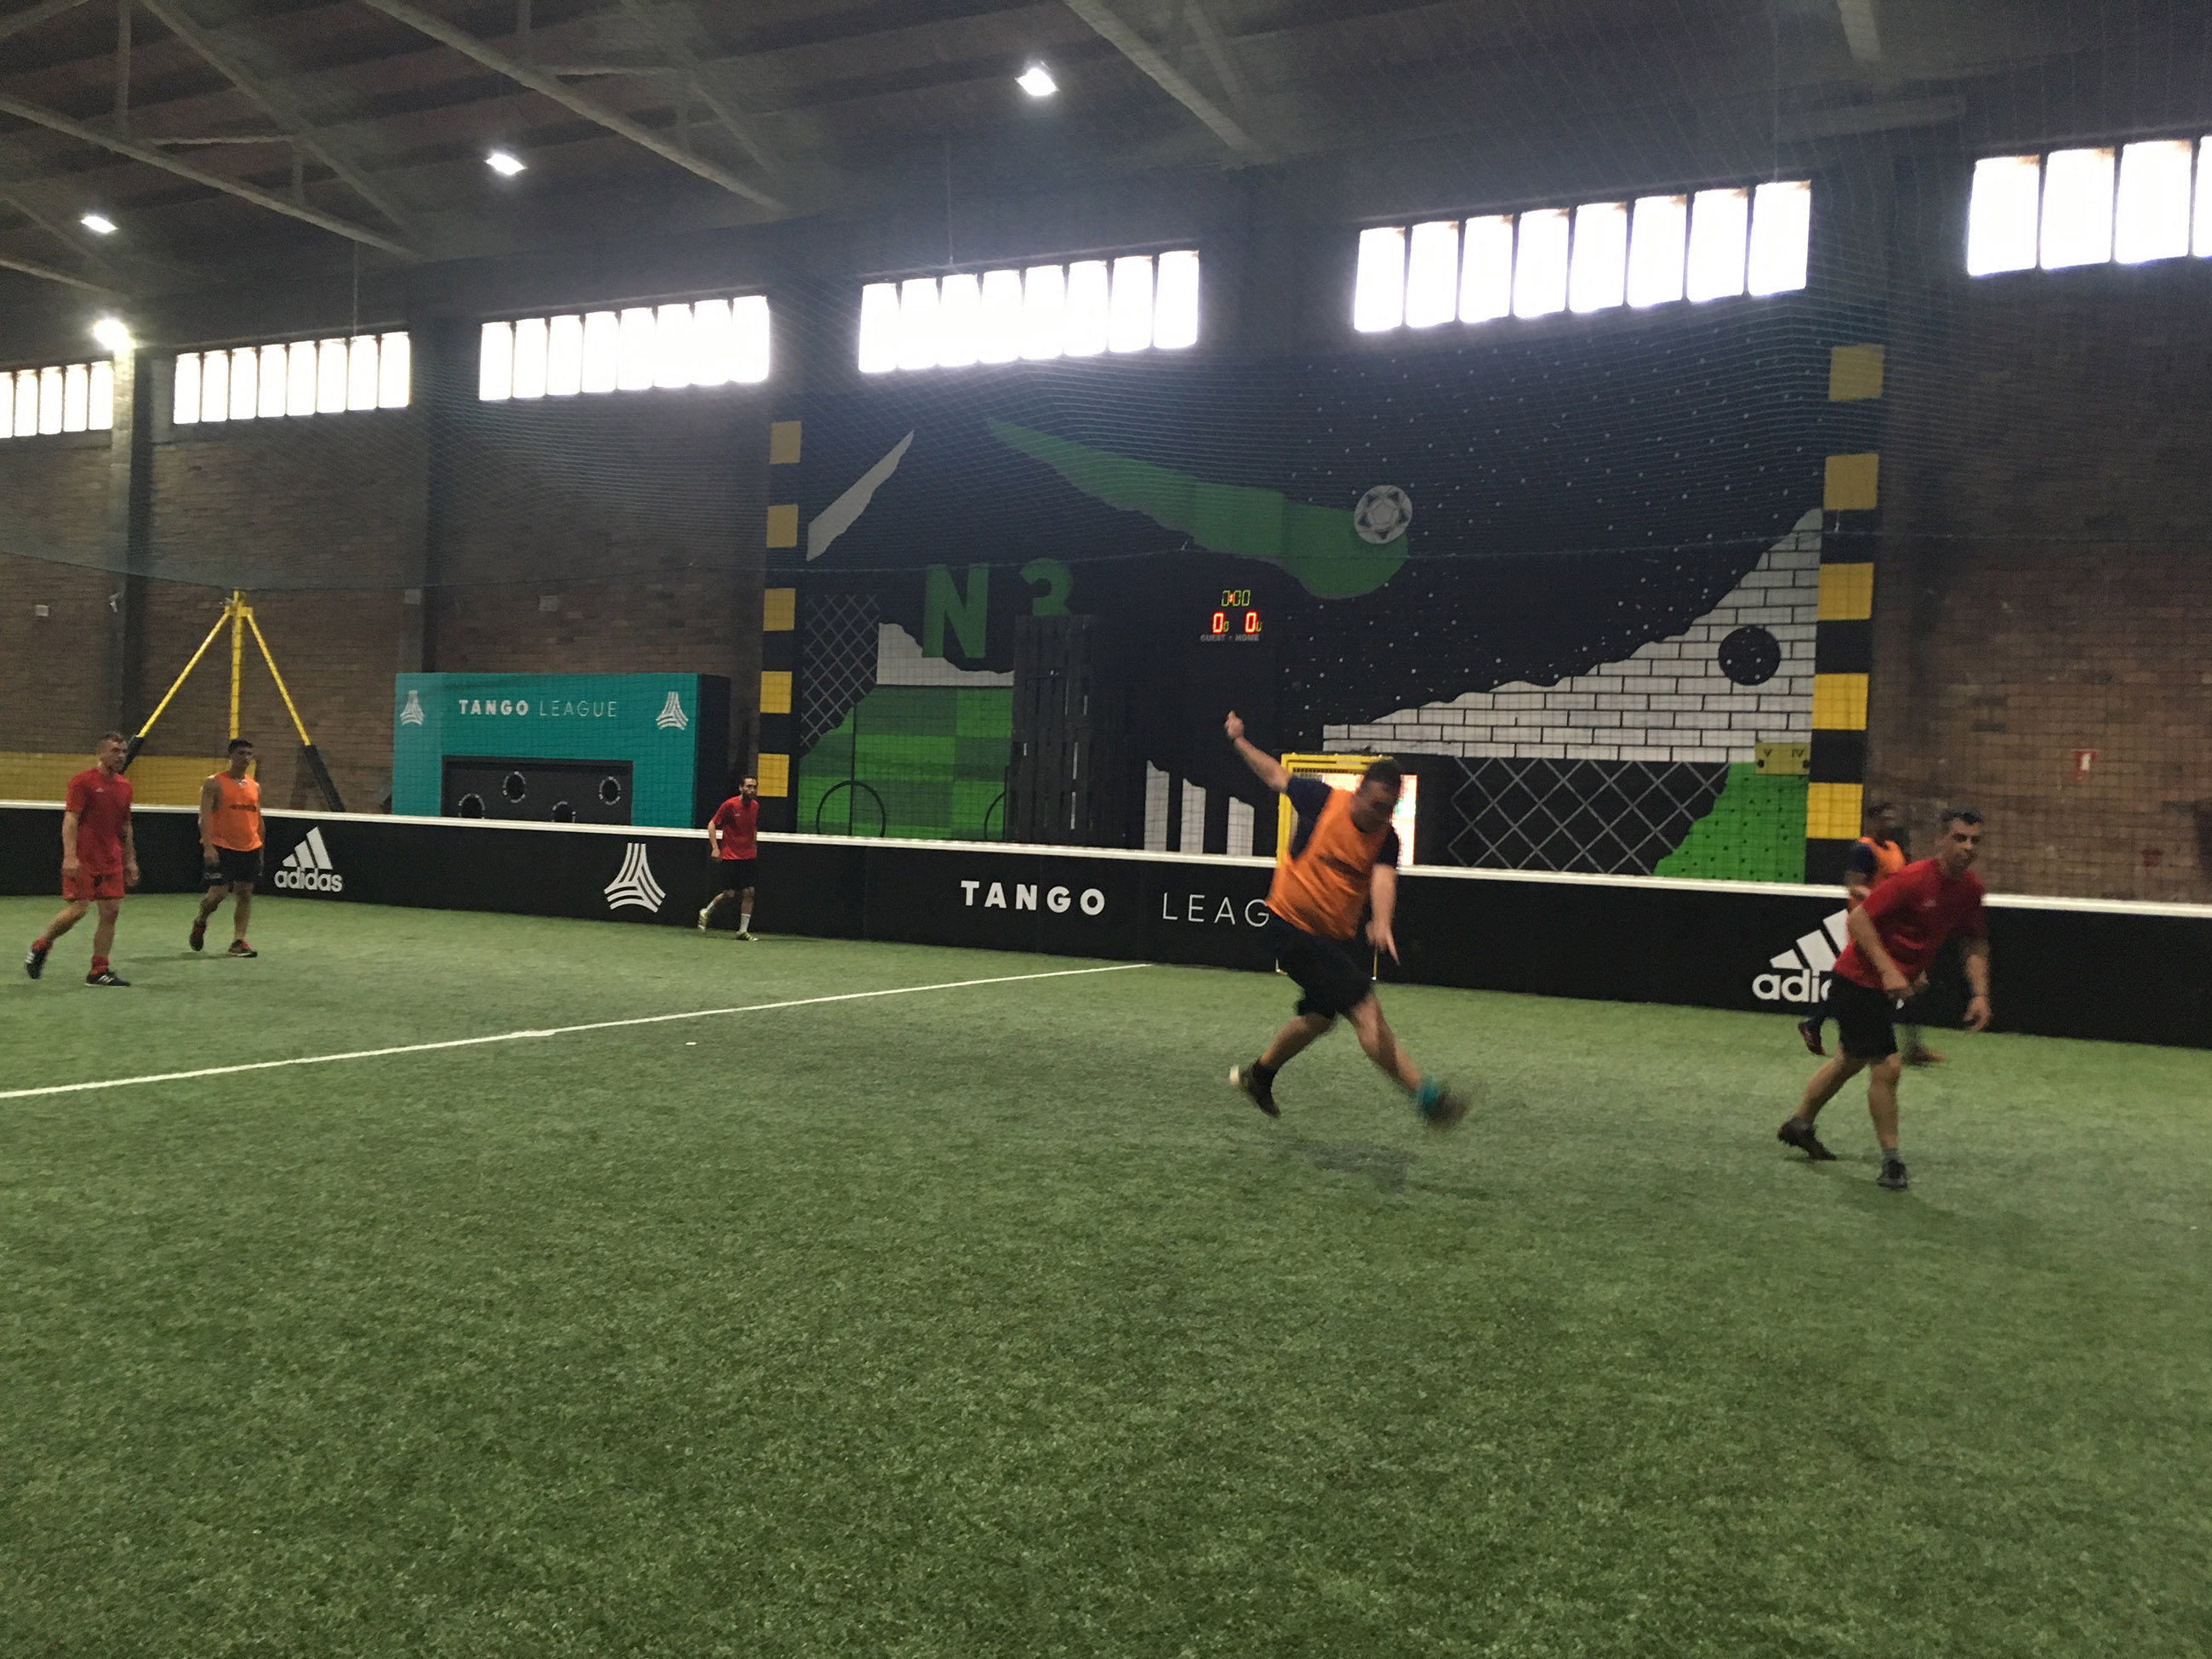 Photograph of a football match of the Mary Jane Football League. The match is played at an indoor venue. In total, there are five players on the pitch.